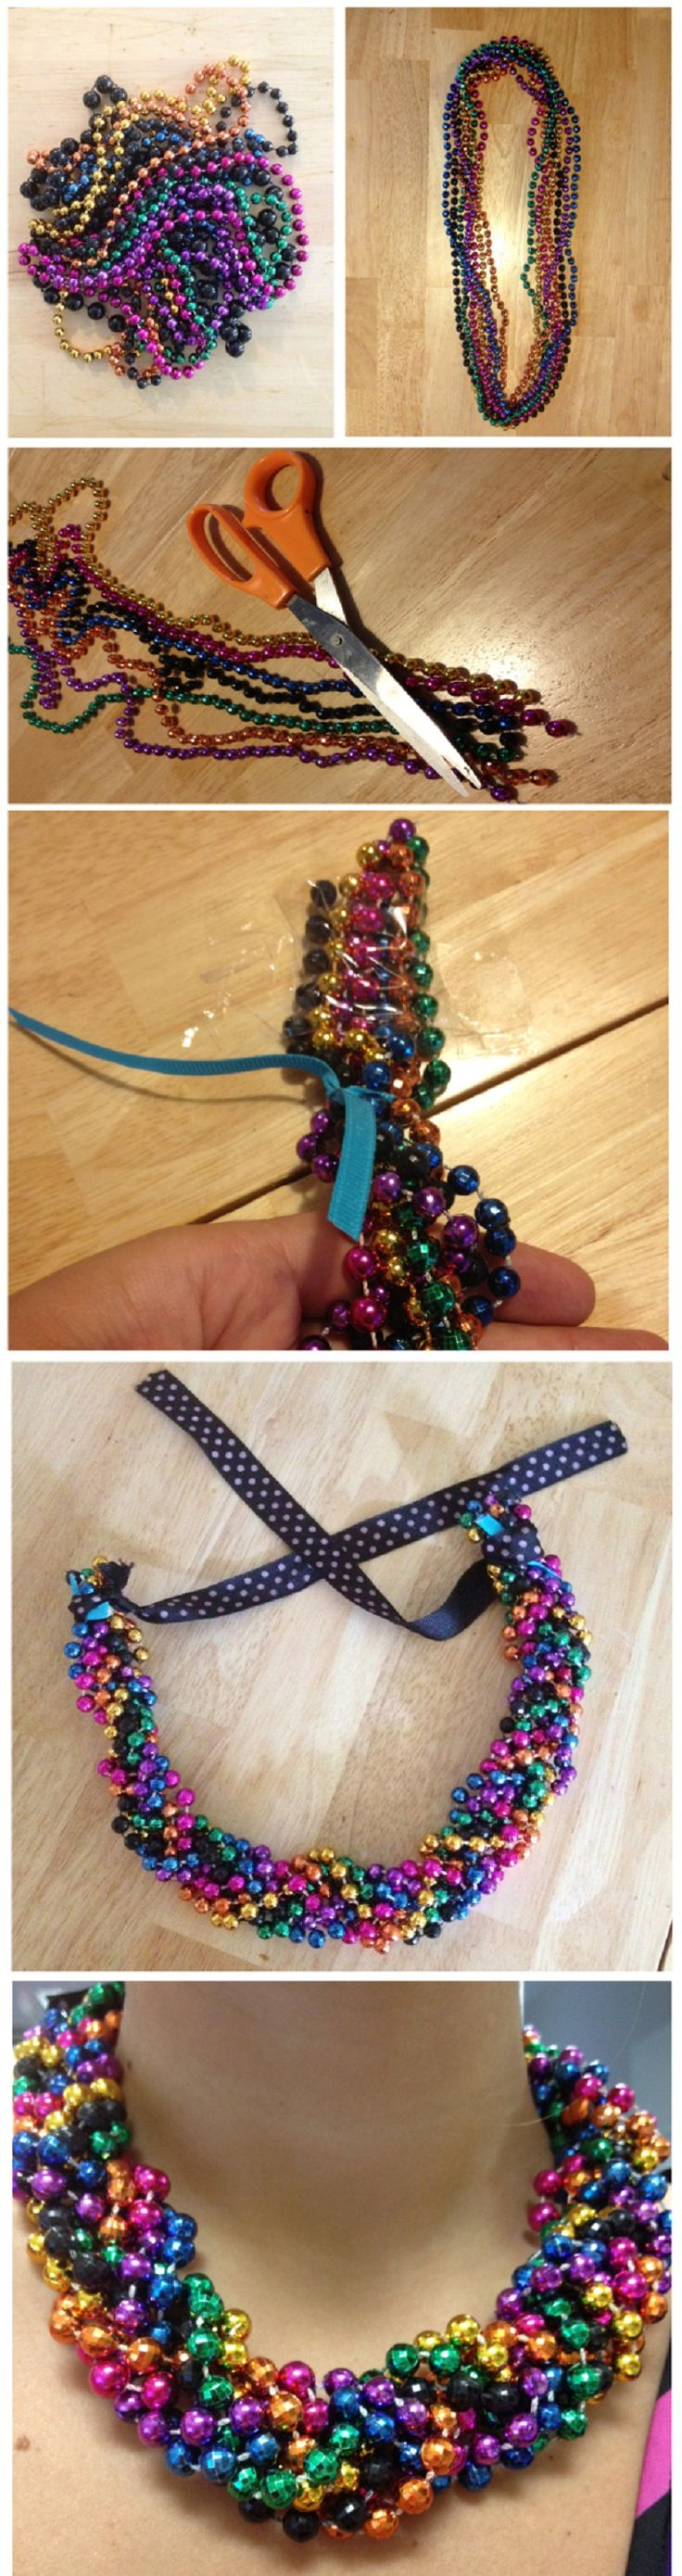 Diy Mardi Gras Statement Necklace - 13 Fierce DIY Statement Necklace Tutorials | GleamItUp